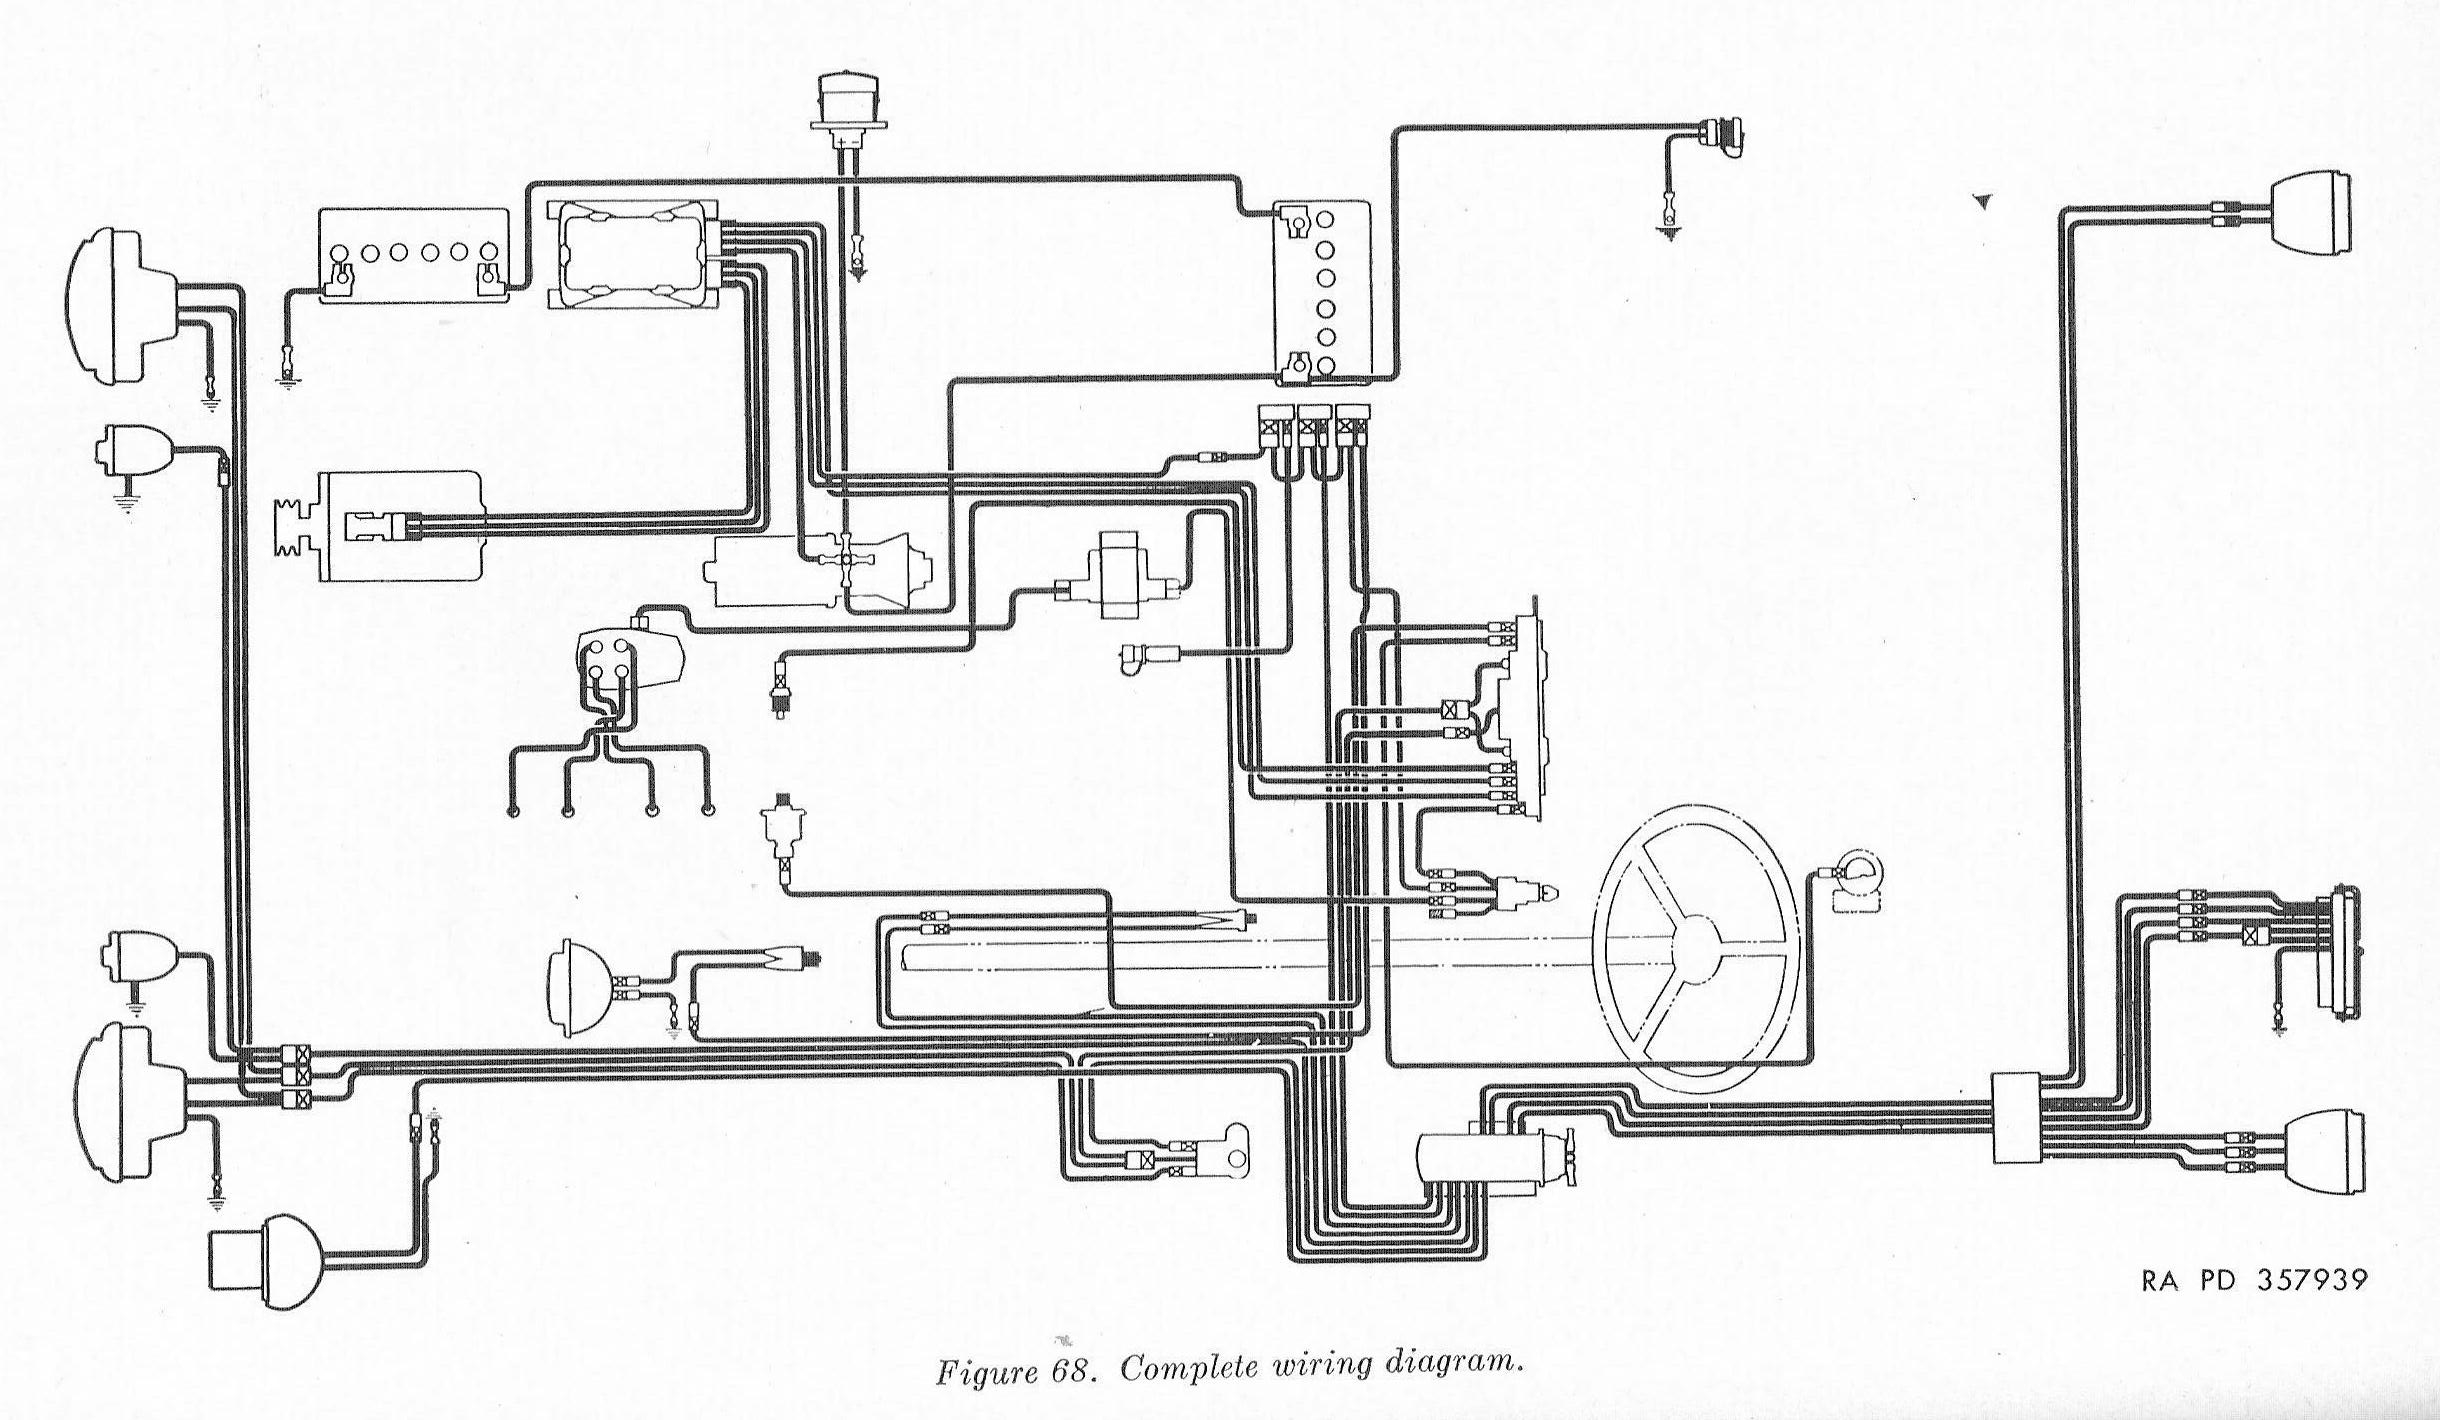 lm_7091] 1952 jeep willy wiring diagram get free image about wiring diagram  wiring diagram  hone puti ixtu nowa orsal emba mohammedshrine librar wiring 101